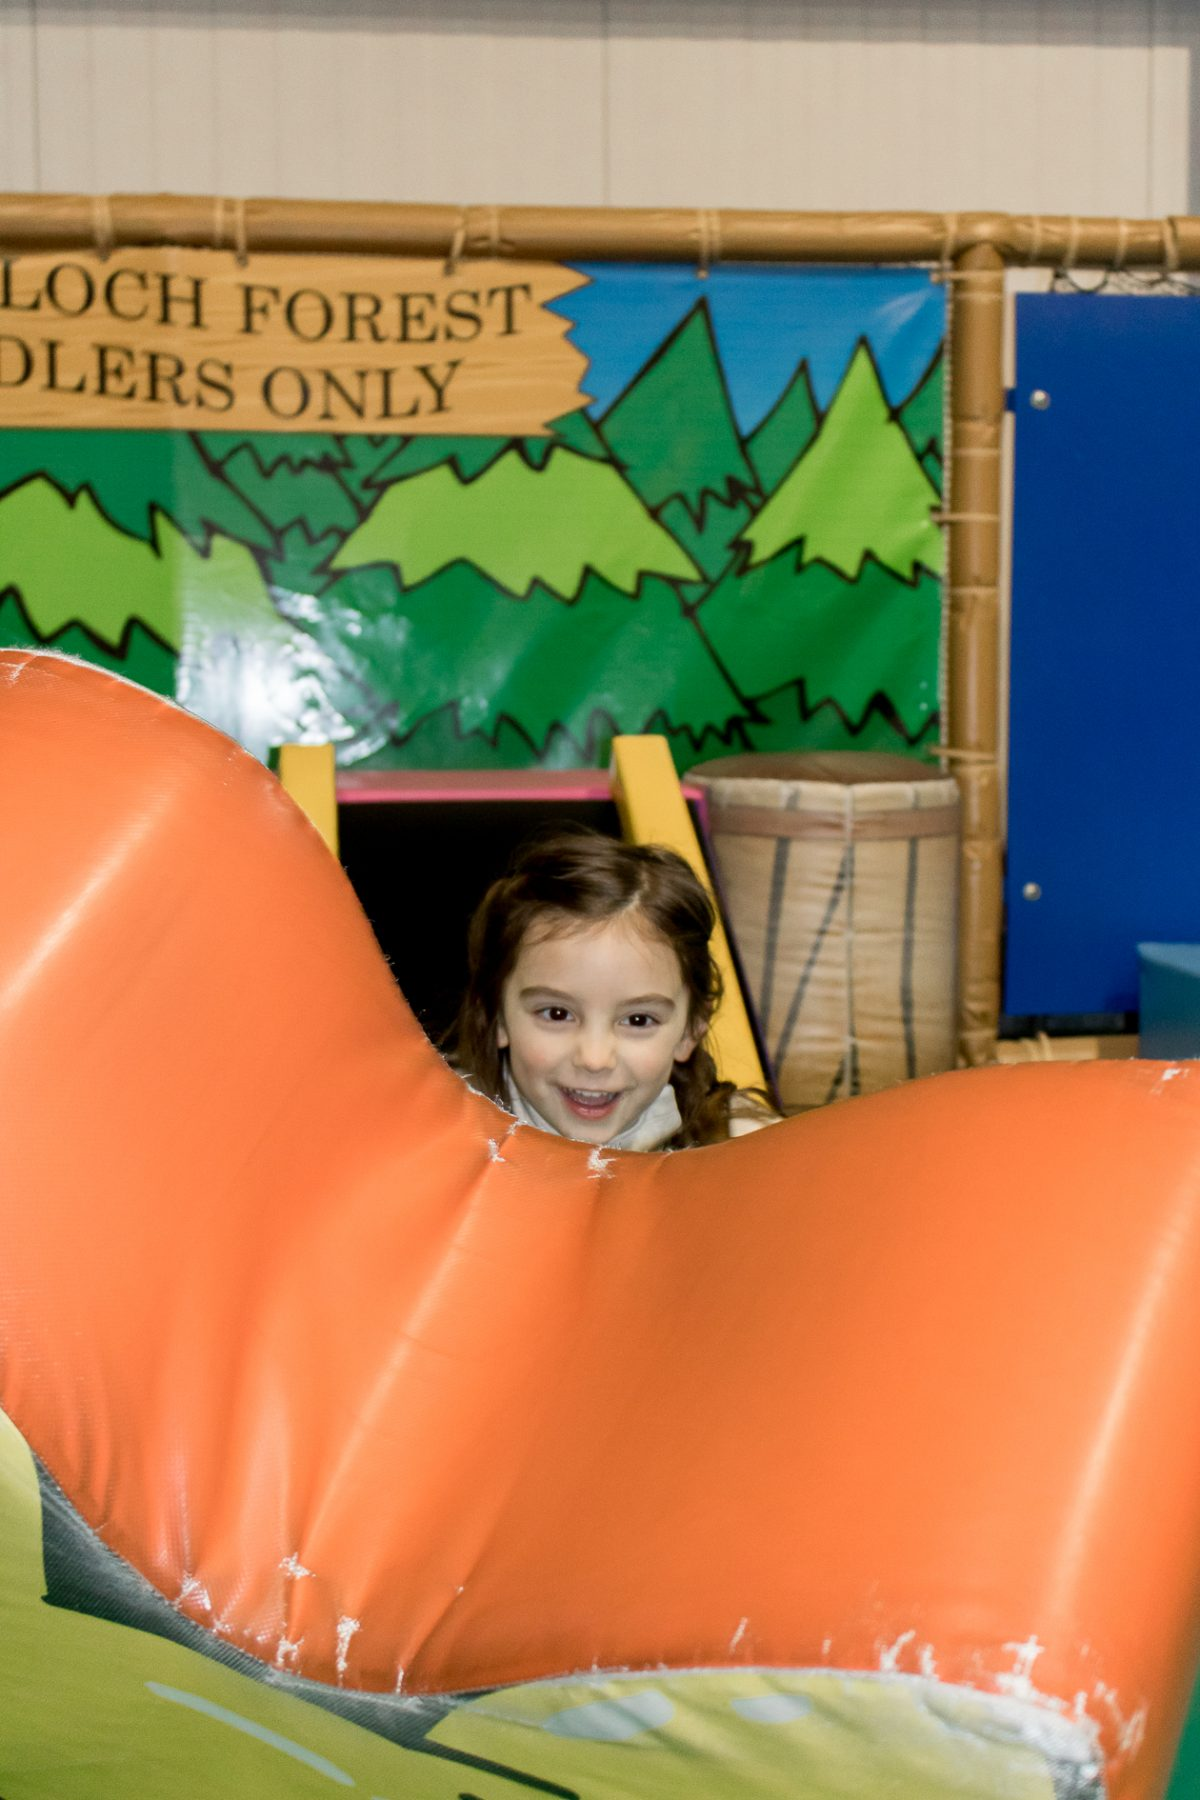 Little girl wearing tan sweater and smiling while playing at Woodloch Forest Toddlers Only Play Area